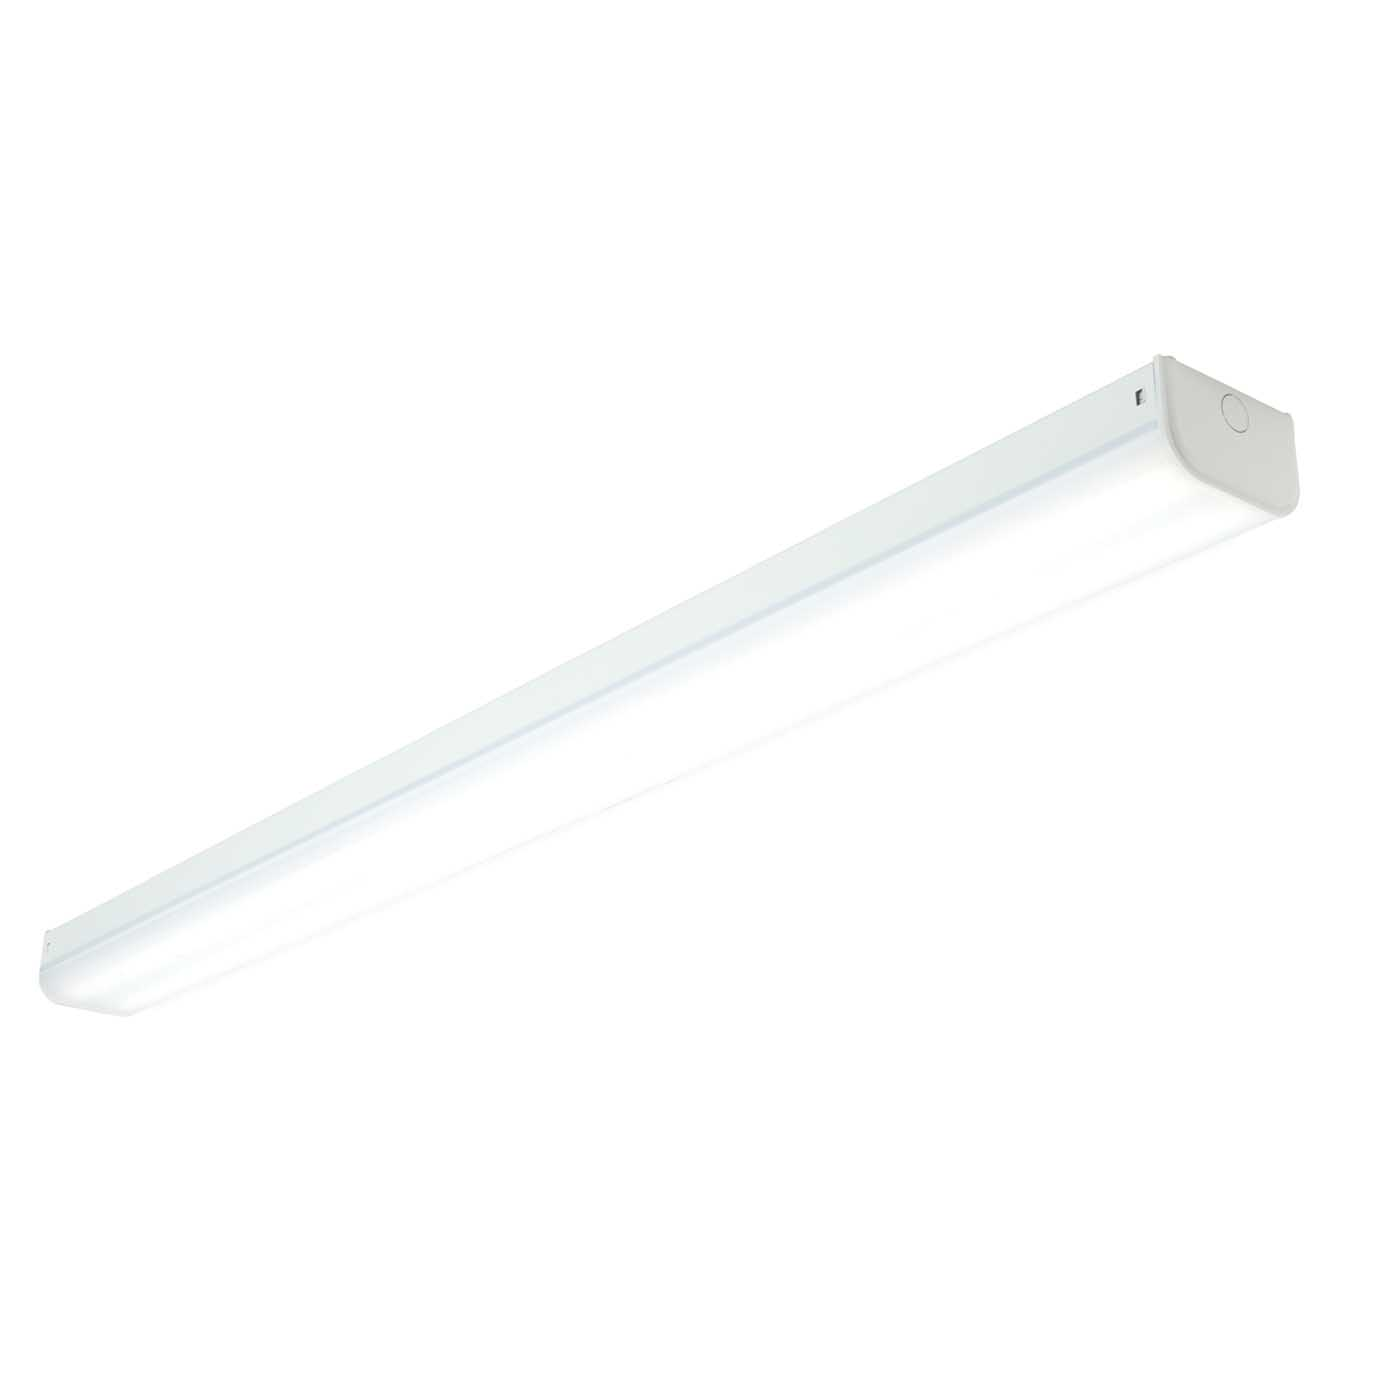 Saxby Linear Indoor Flush Batten Light Opal Pc 60W LED (SMD 2835) Cool White Thumbnail 1